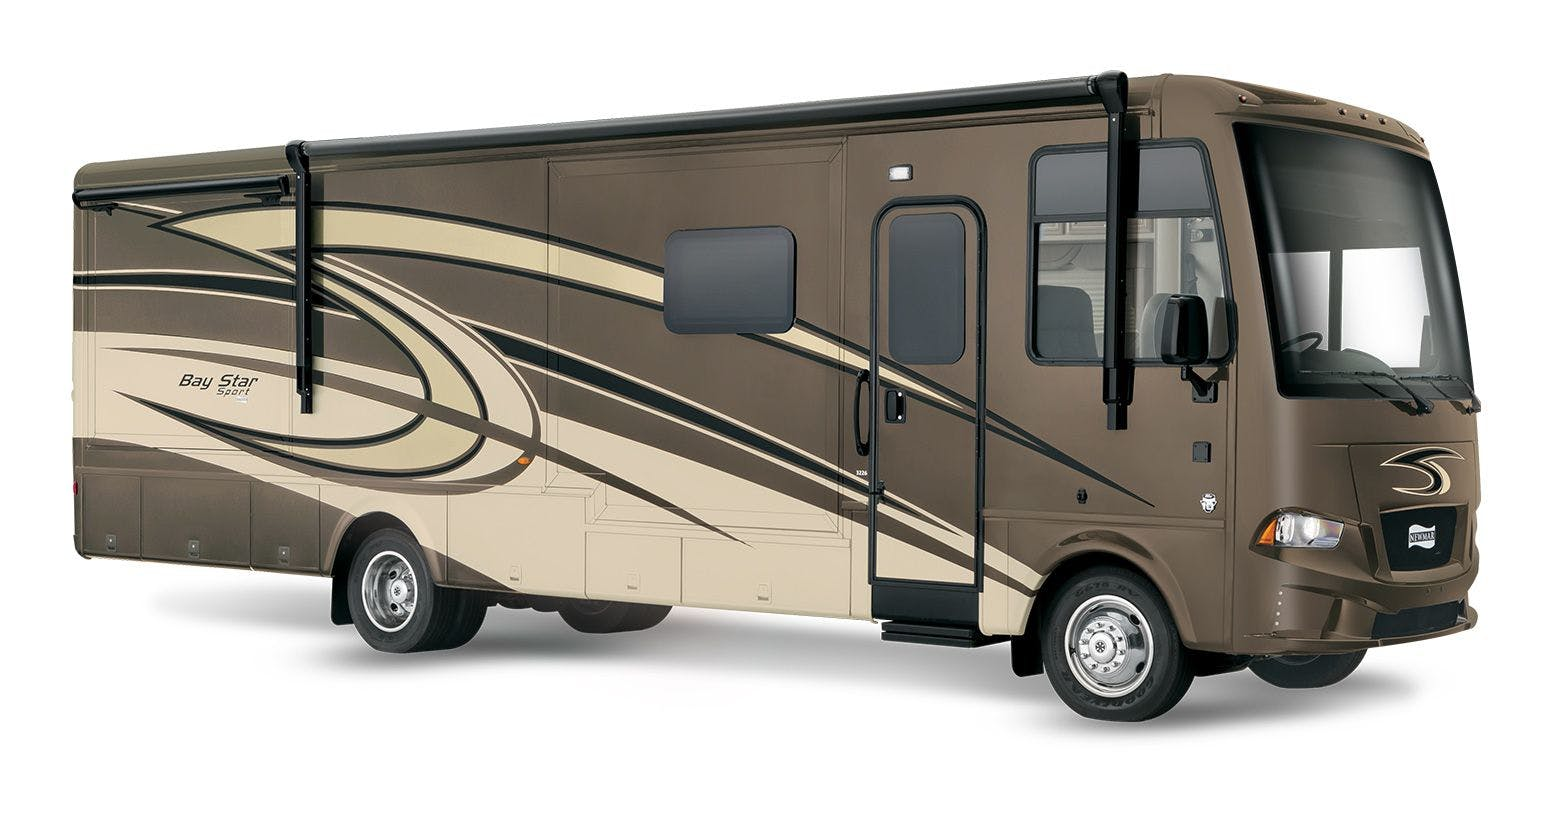 Top 10 Bang-for-Your-Buck RVs